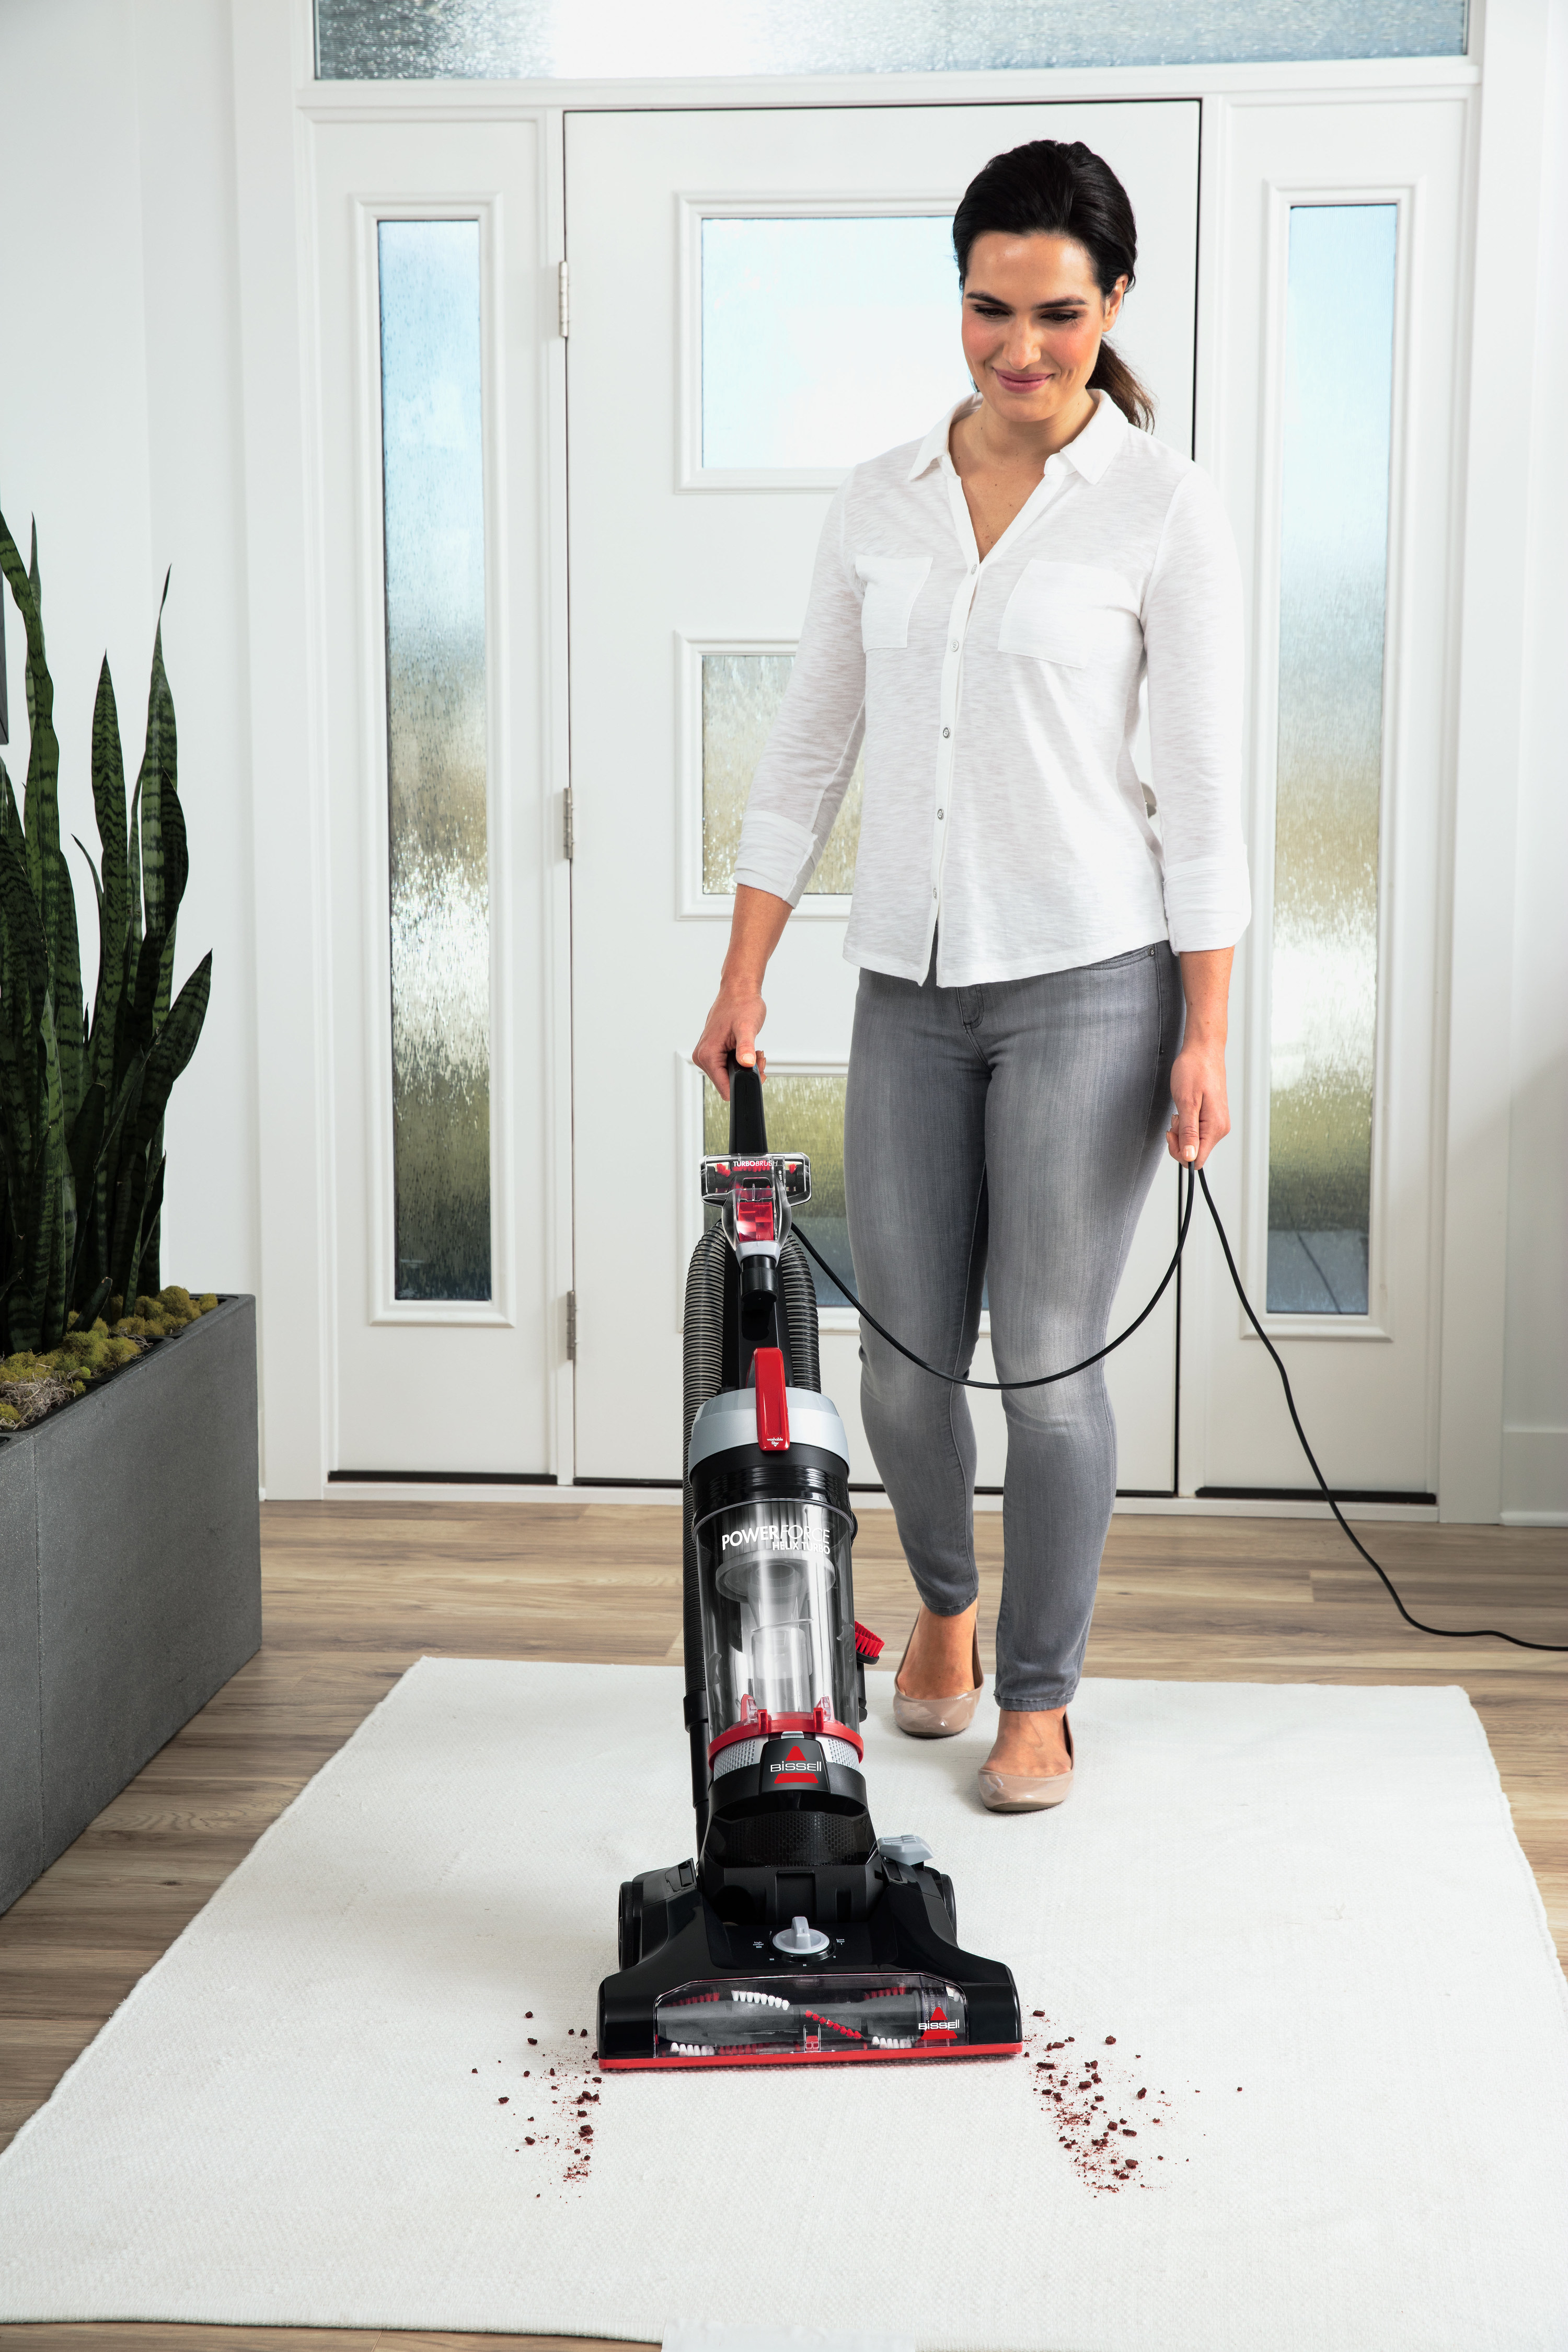 person using a bissell vacuum to clean up dog food